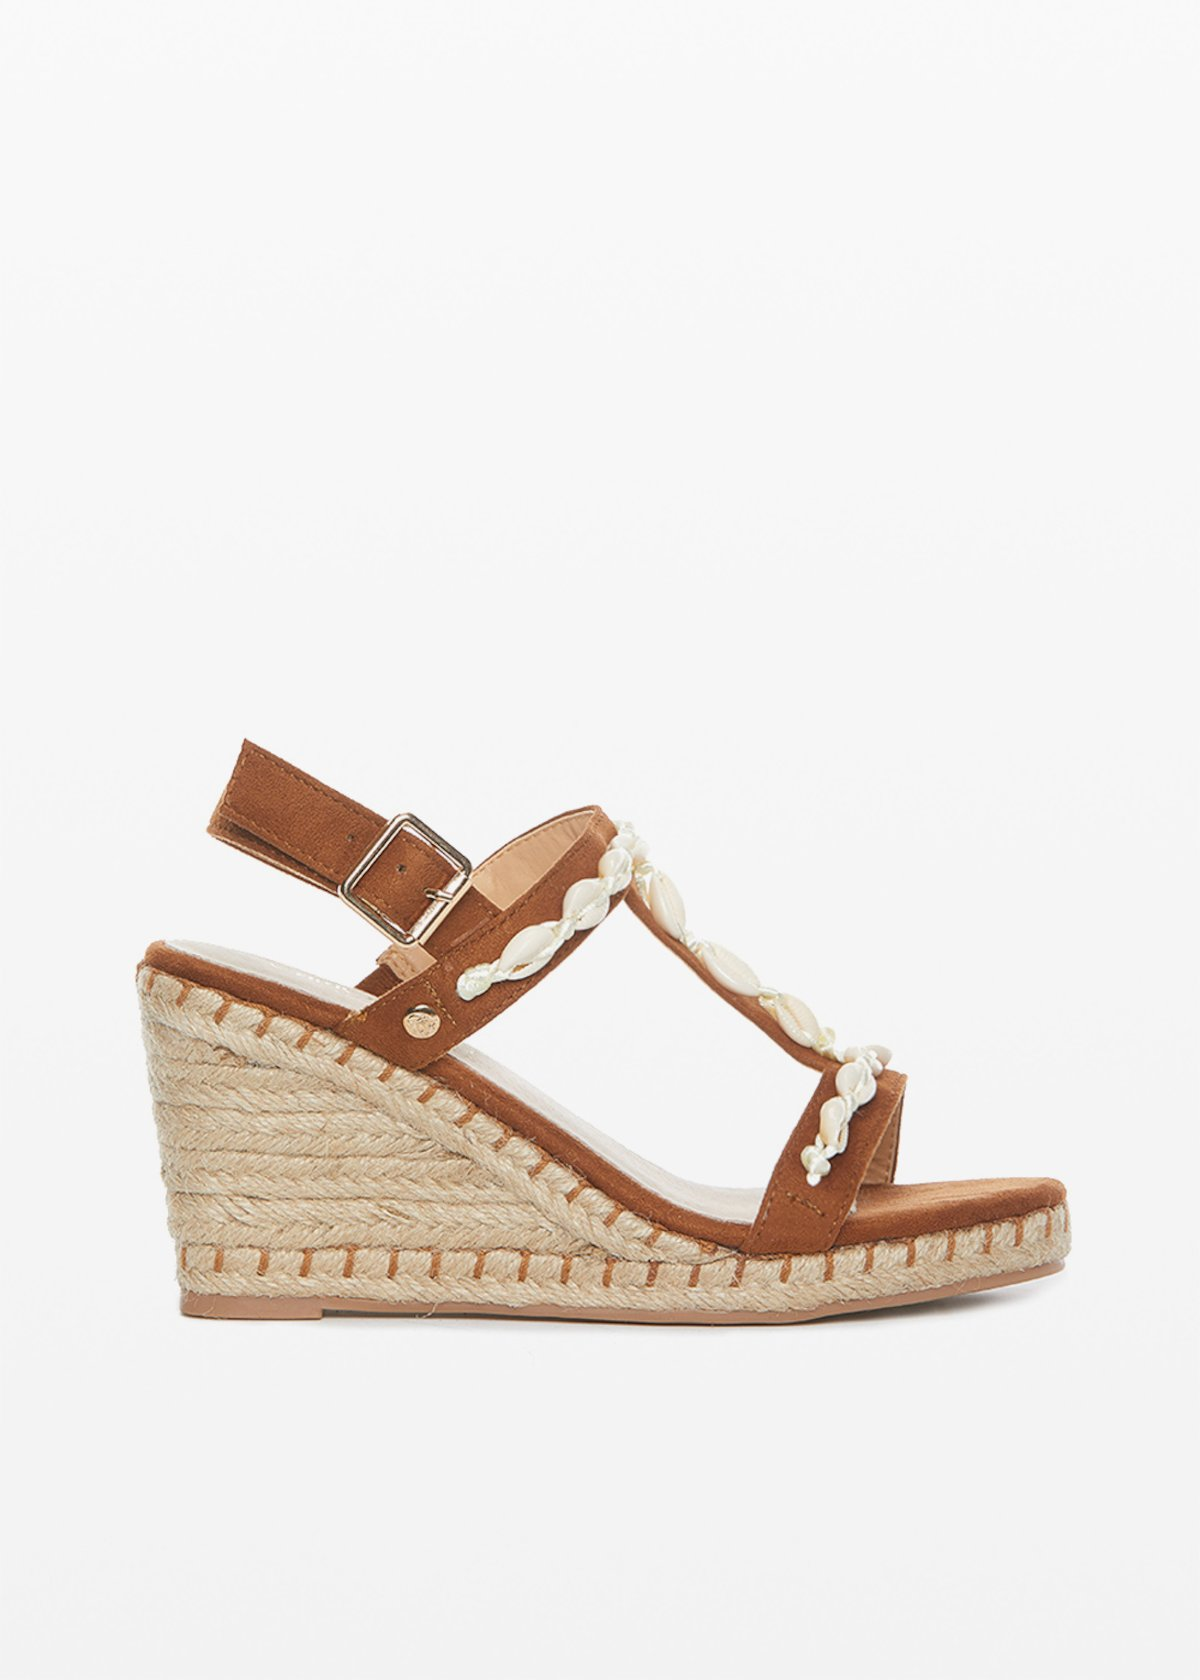 Sciama microfibre and straw wedge sandals - Tobacco - Woman - Category image